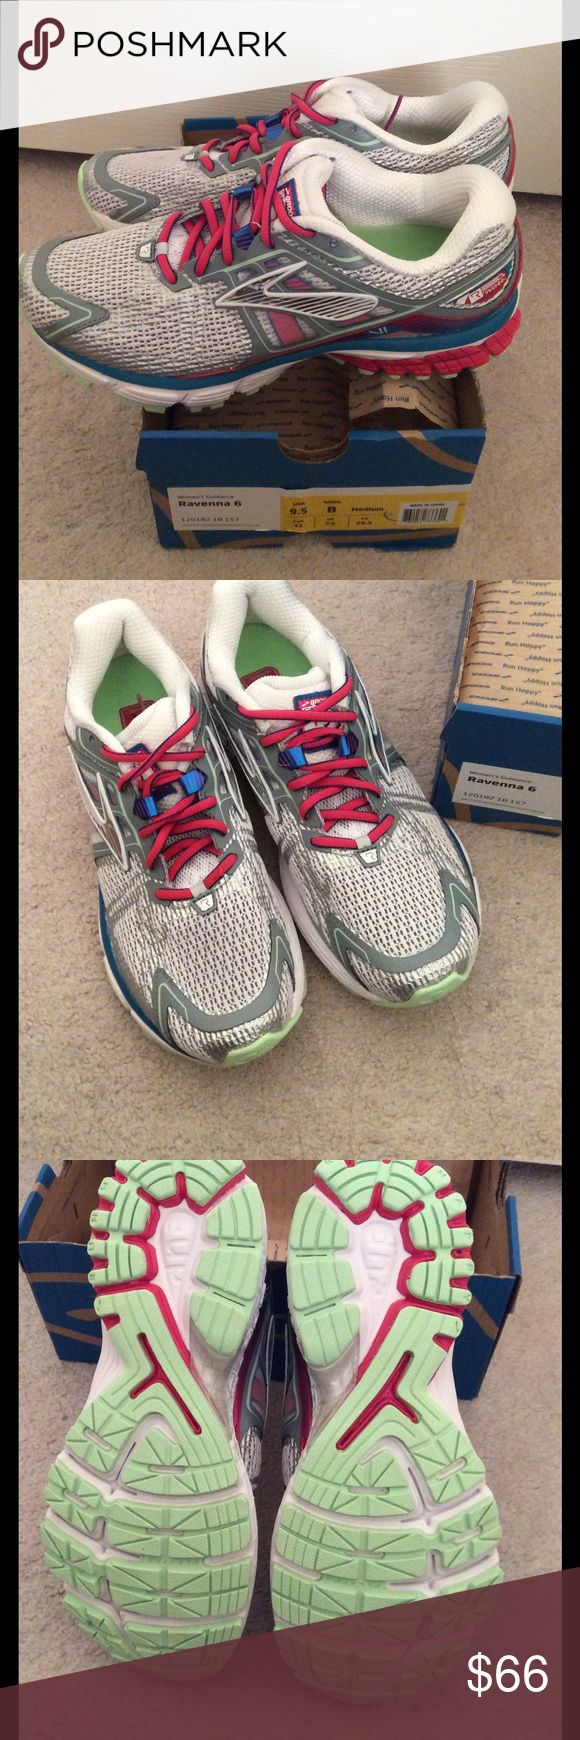 🆕 BROOKS ravenna shoes- women's size 9.5 These are brand new Brooks Ravenna 6 shoes  women's size US 9.5 EU 41 Retails $110  ***PRICE IS FIRM***  A friend purchased these for cross country this season, but haven't worn them. Unfortunately she cut the box top so we can't return, but we will keep them if there are no takers at this price!   NO OFFERS or NEGOTIATIONS please!  Thank you for understanding  :)   I also have other NEW shoes listed interested- please see my other listings :) Brooks…